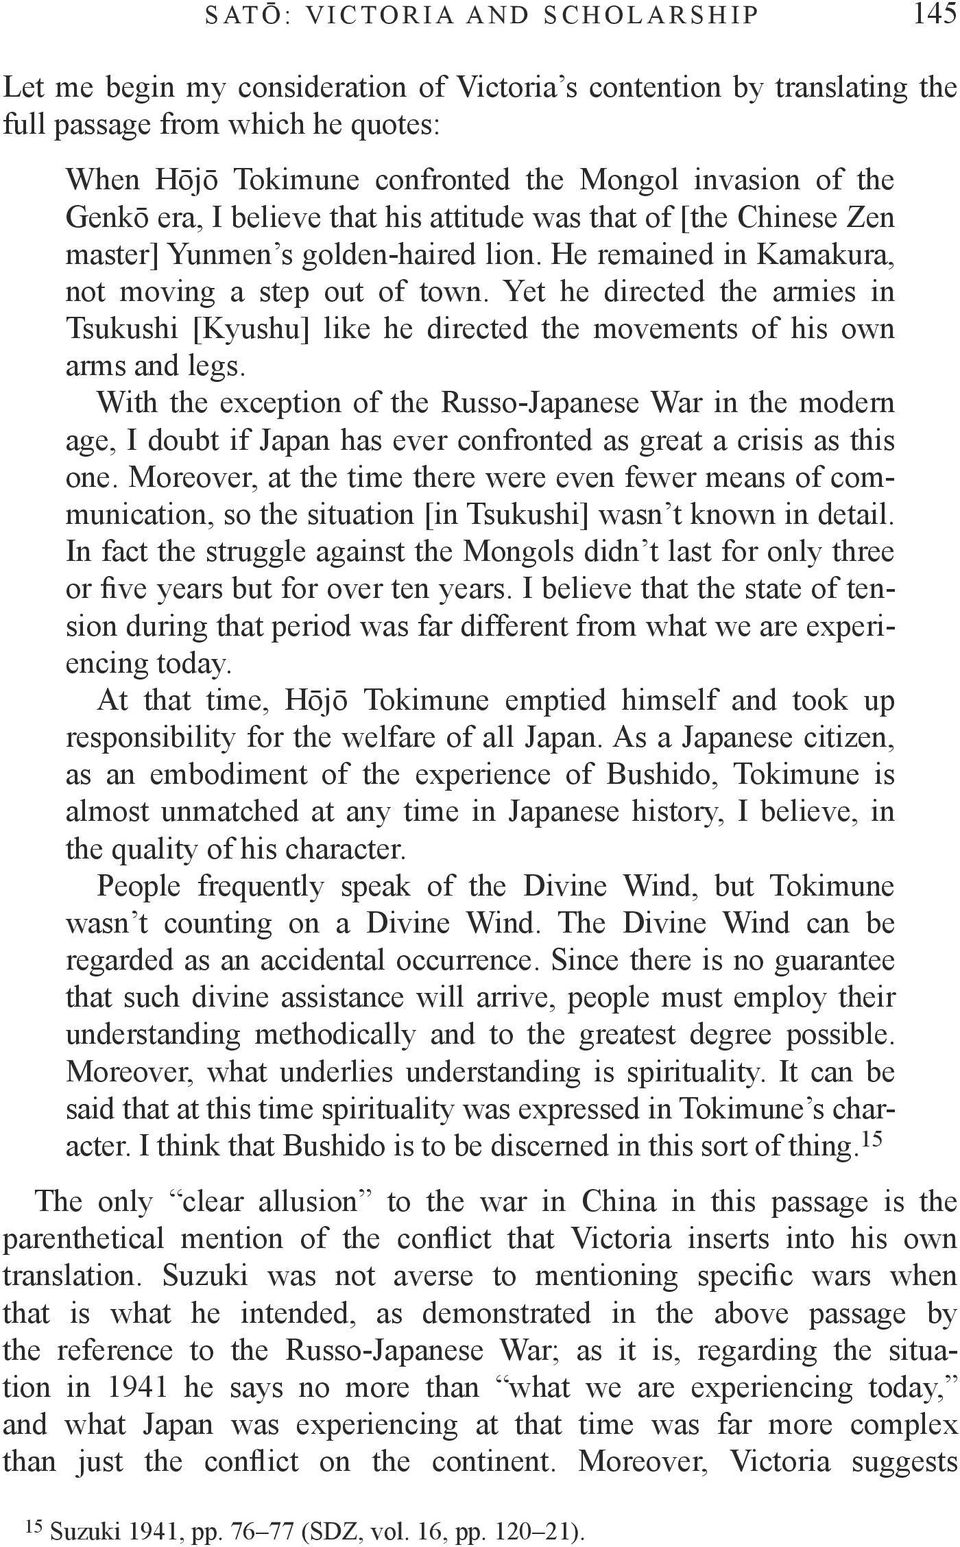 Yet he directed the armies in Tsukushi [Kyushu] like he directed the movements of his own arms and legs.